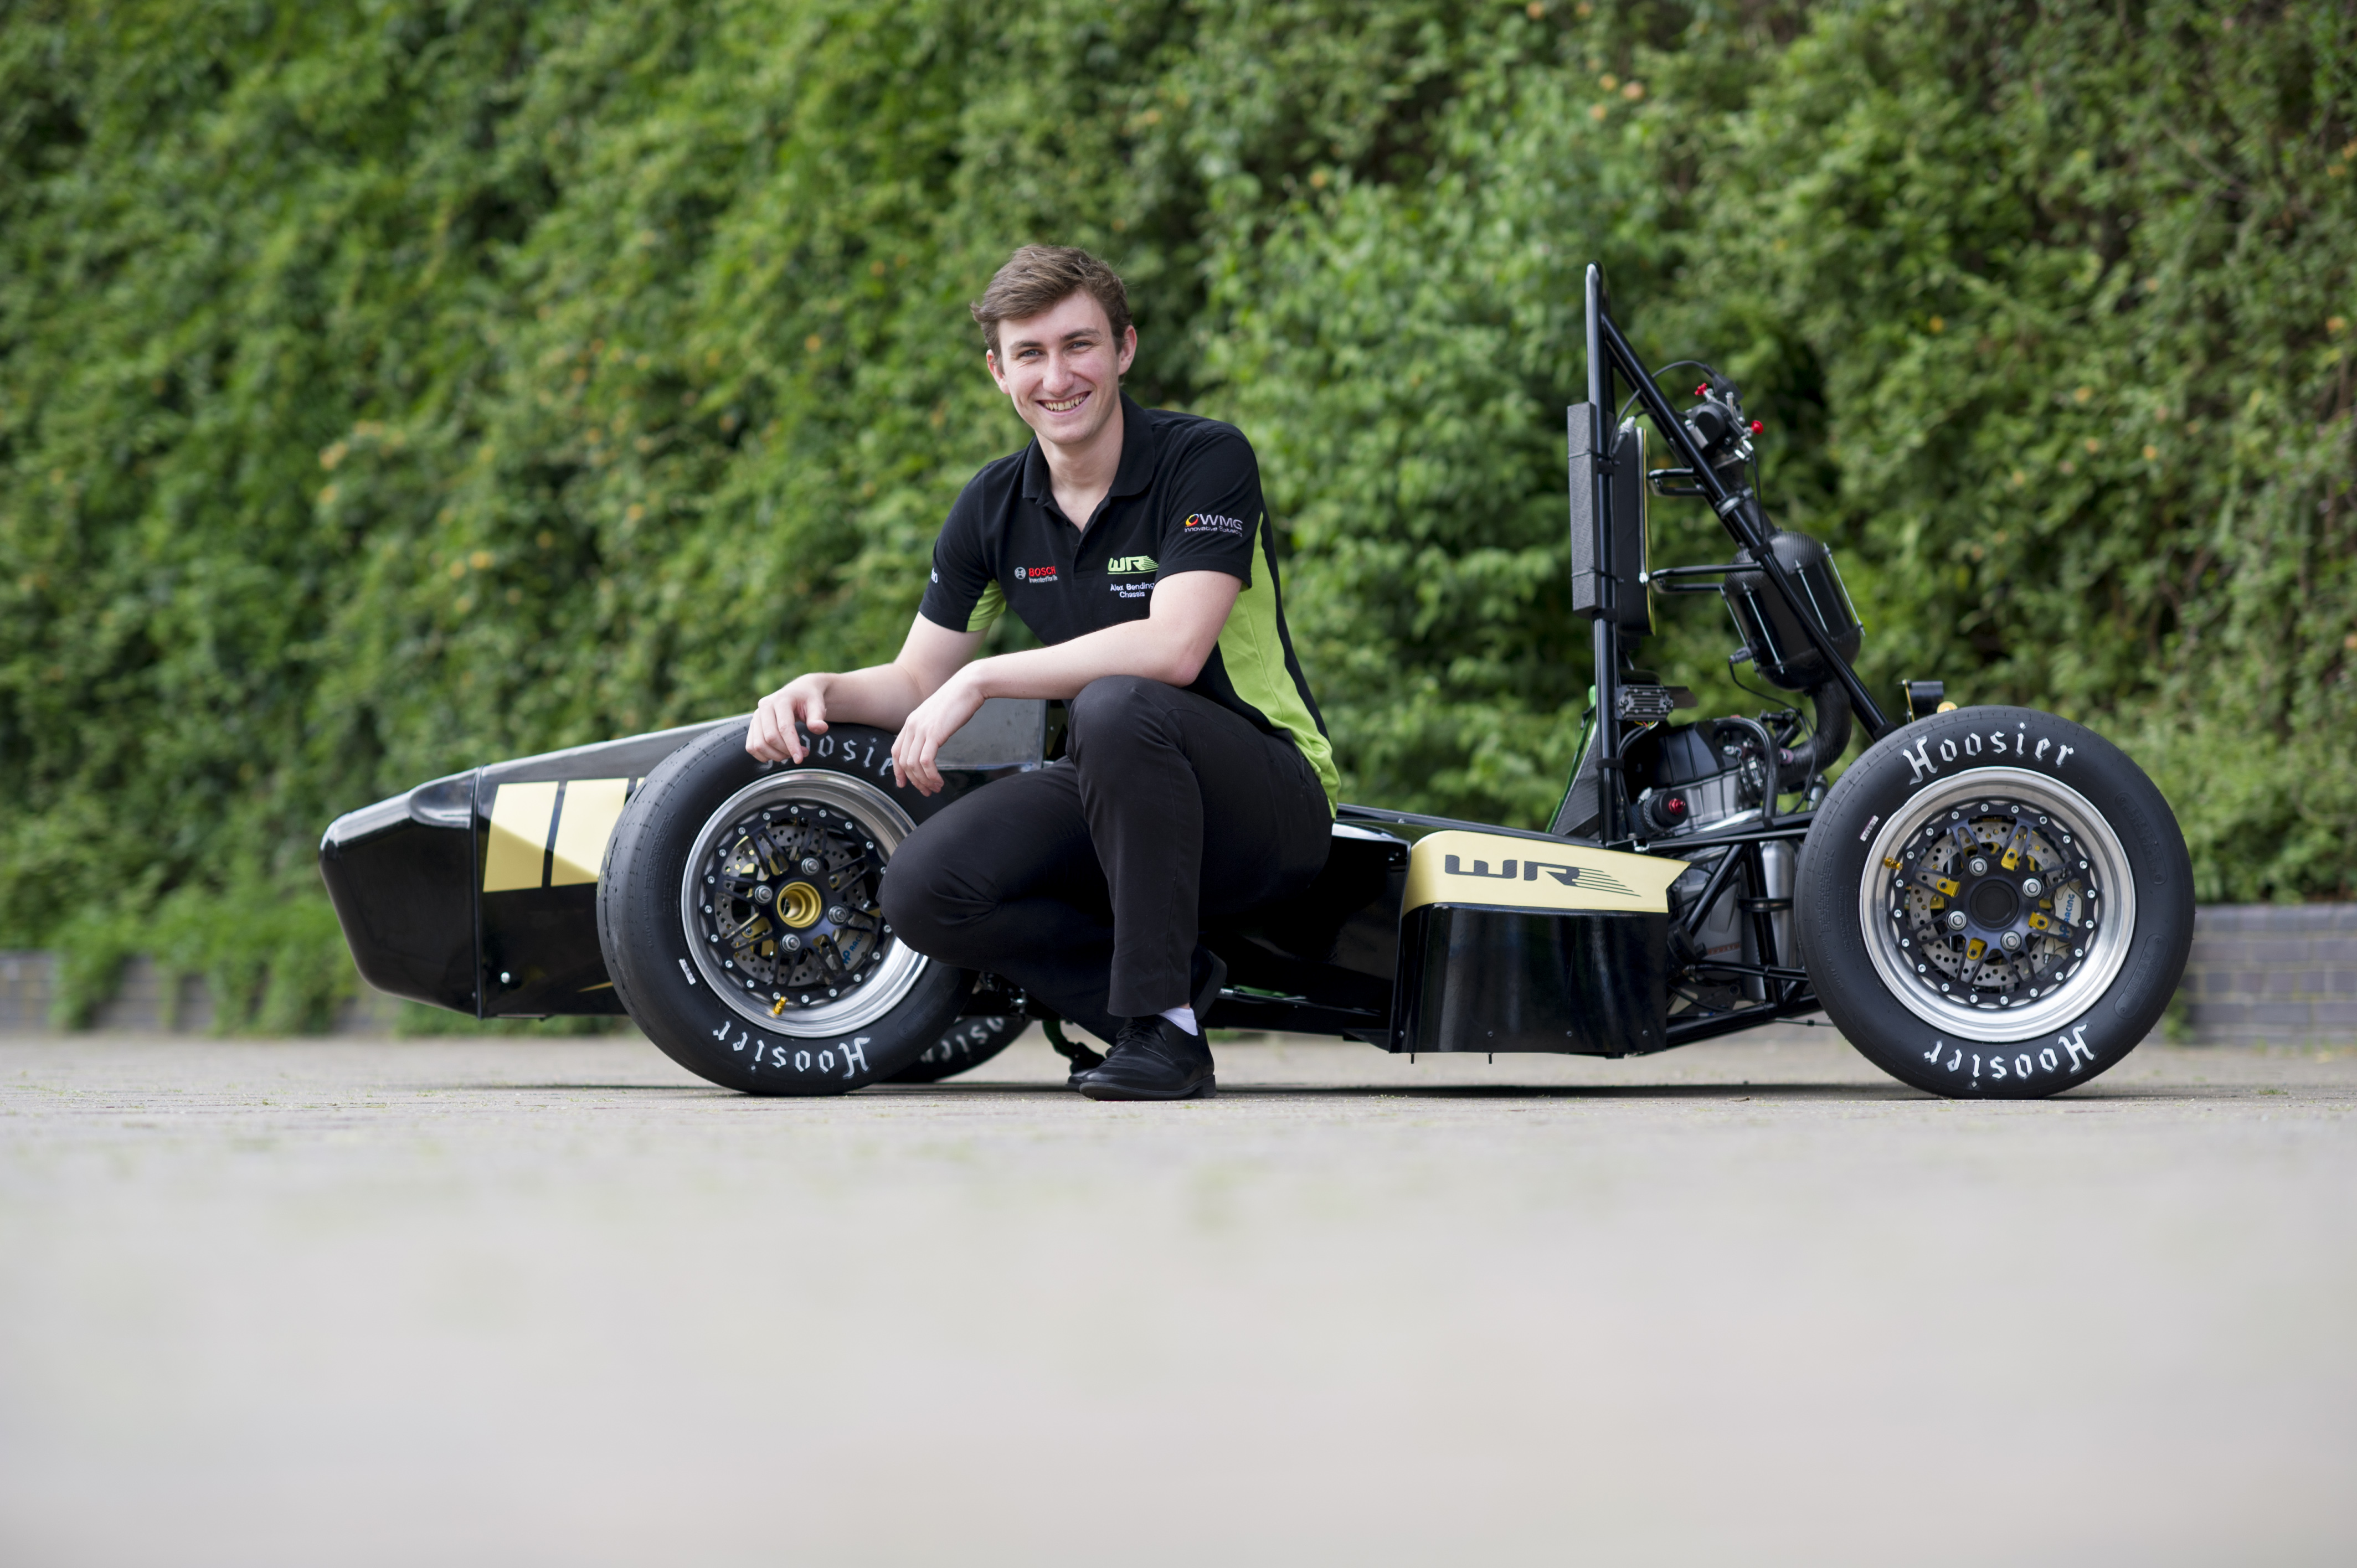 Mb students university of warwick engineering competition events